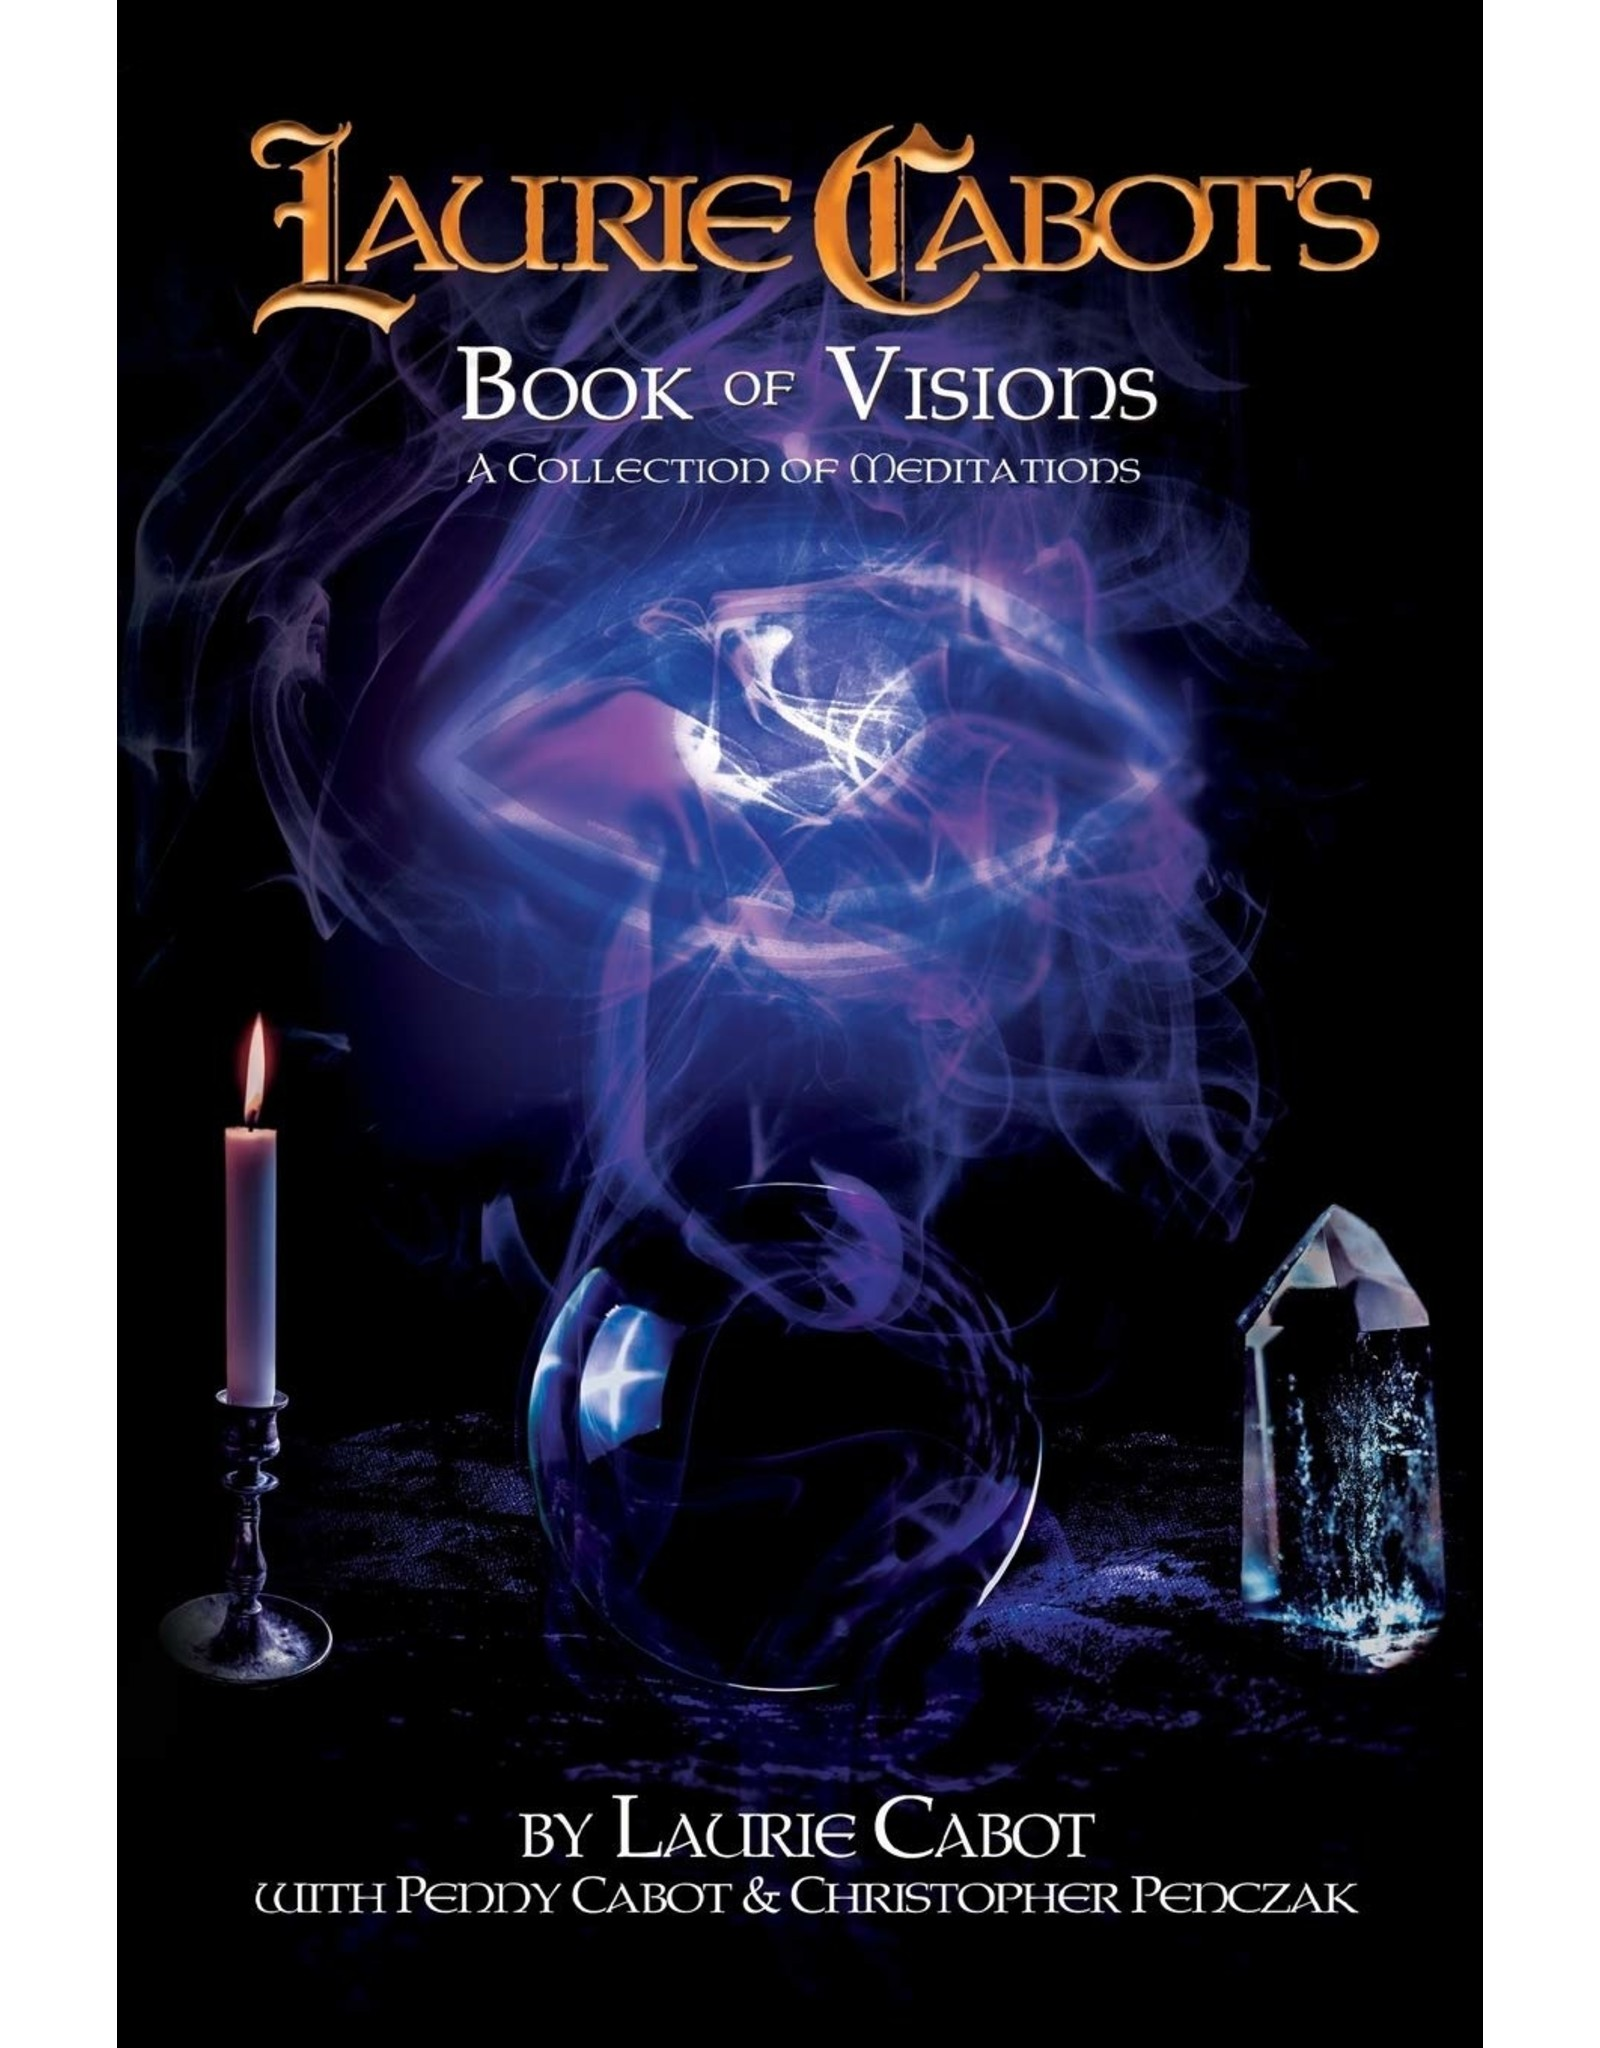 Laurie Cabot's Book of Vissions: A Collection of Meditations